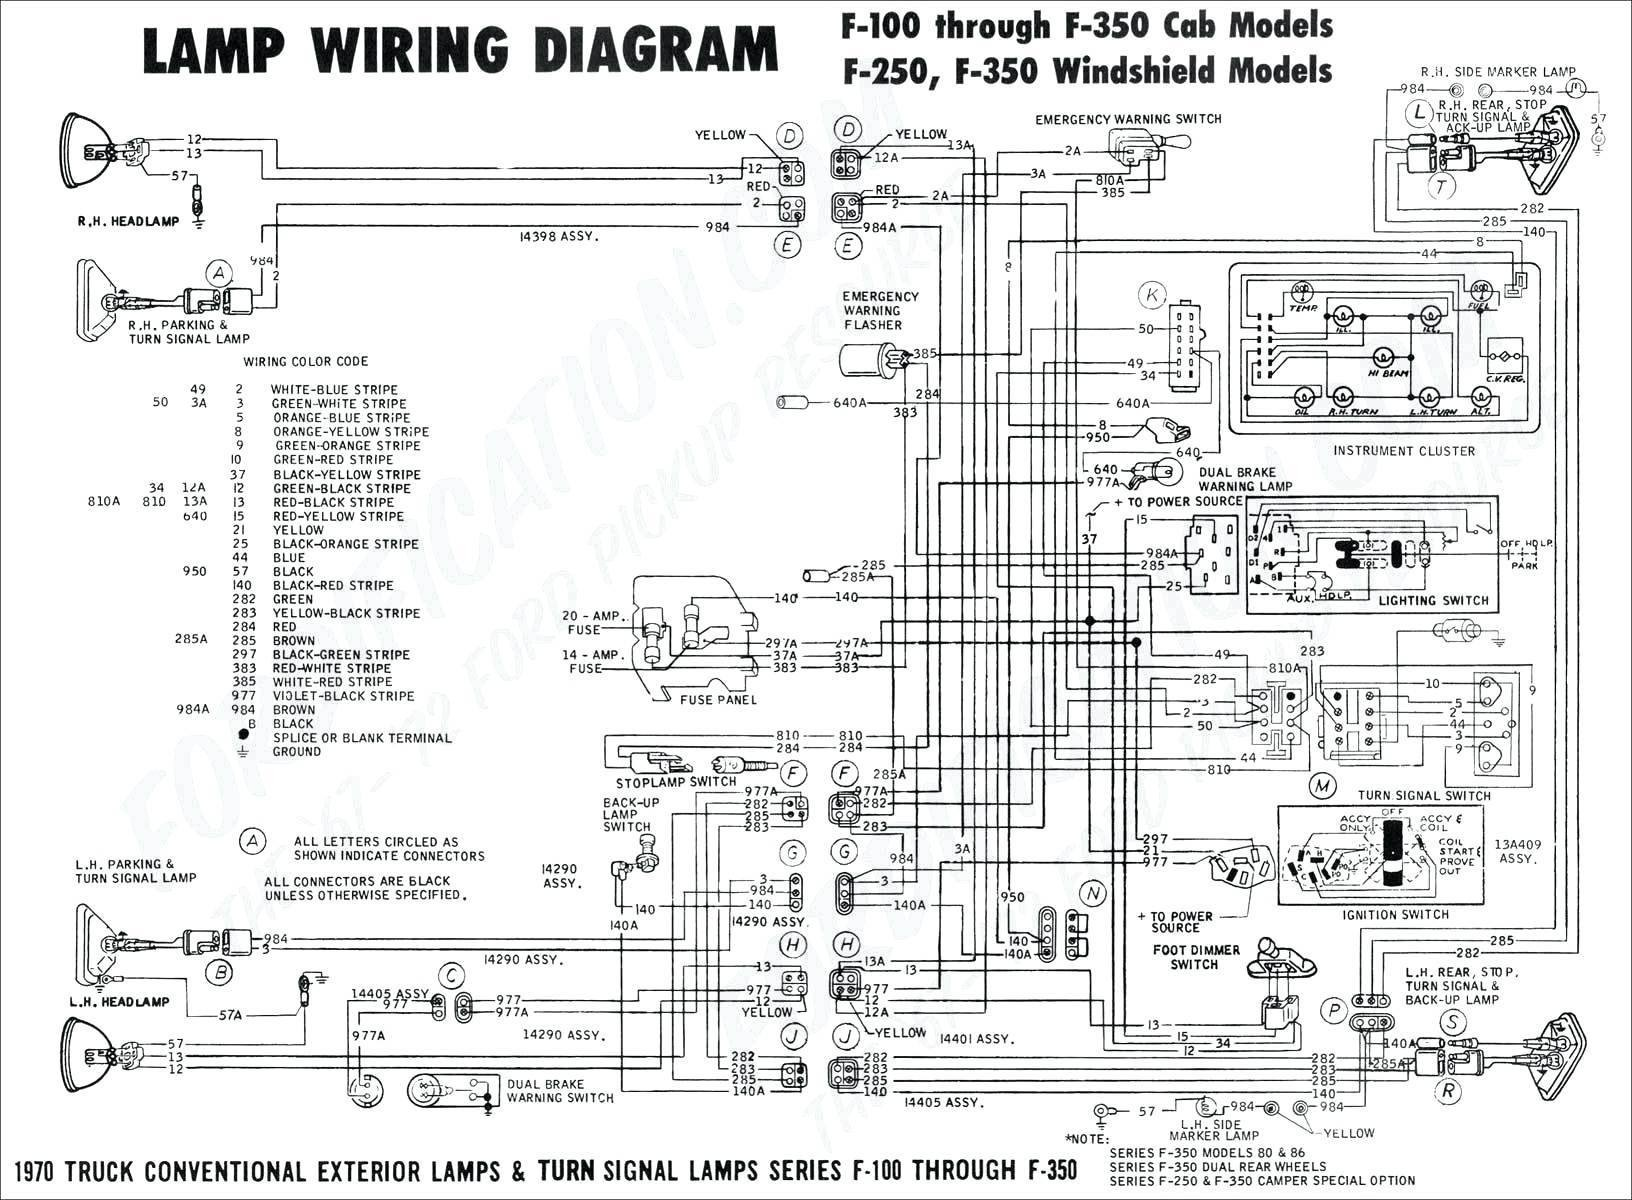 Truck Parts Diagram Fresh 2005 Chevy Silverado Parts You Ll Love Of Truck Parts Diagram Garmin Wiring Diagram List 2003 Chevy Tahoe Parts Diagram Queen